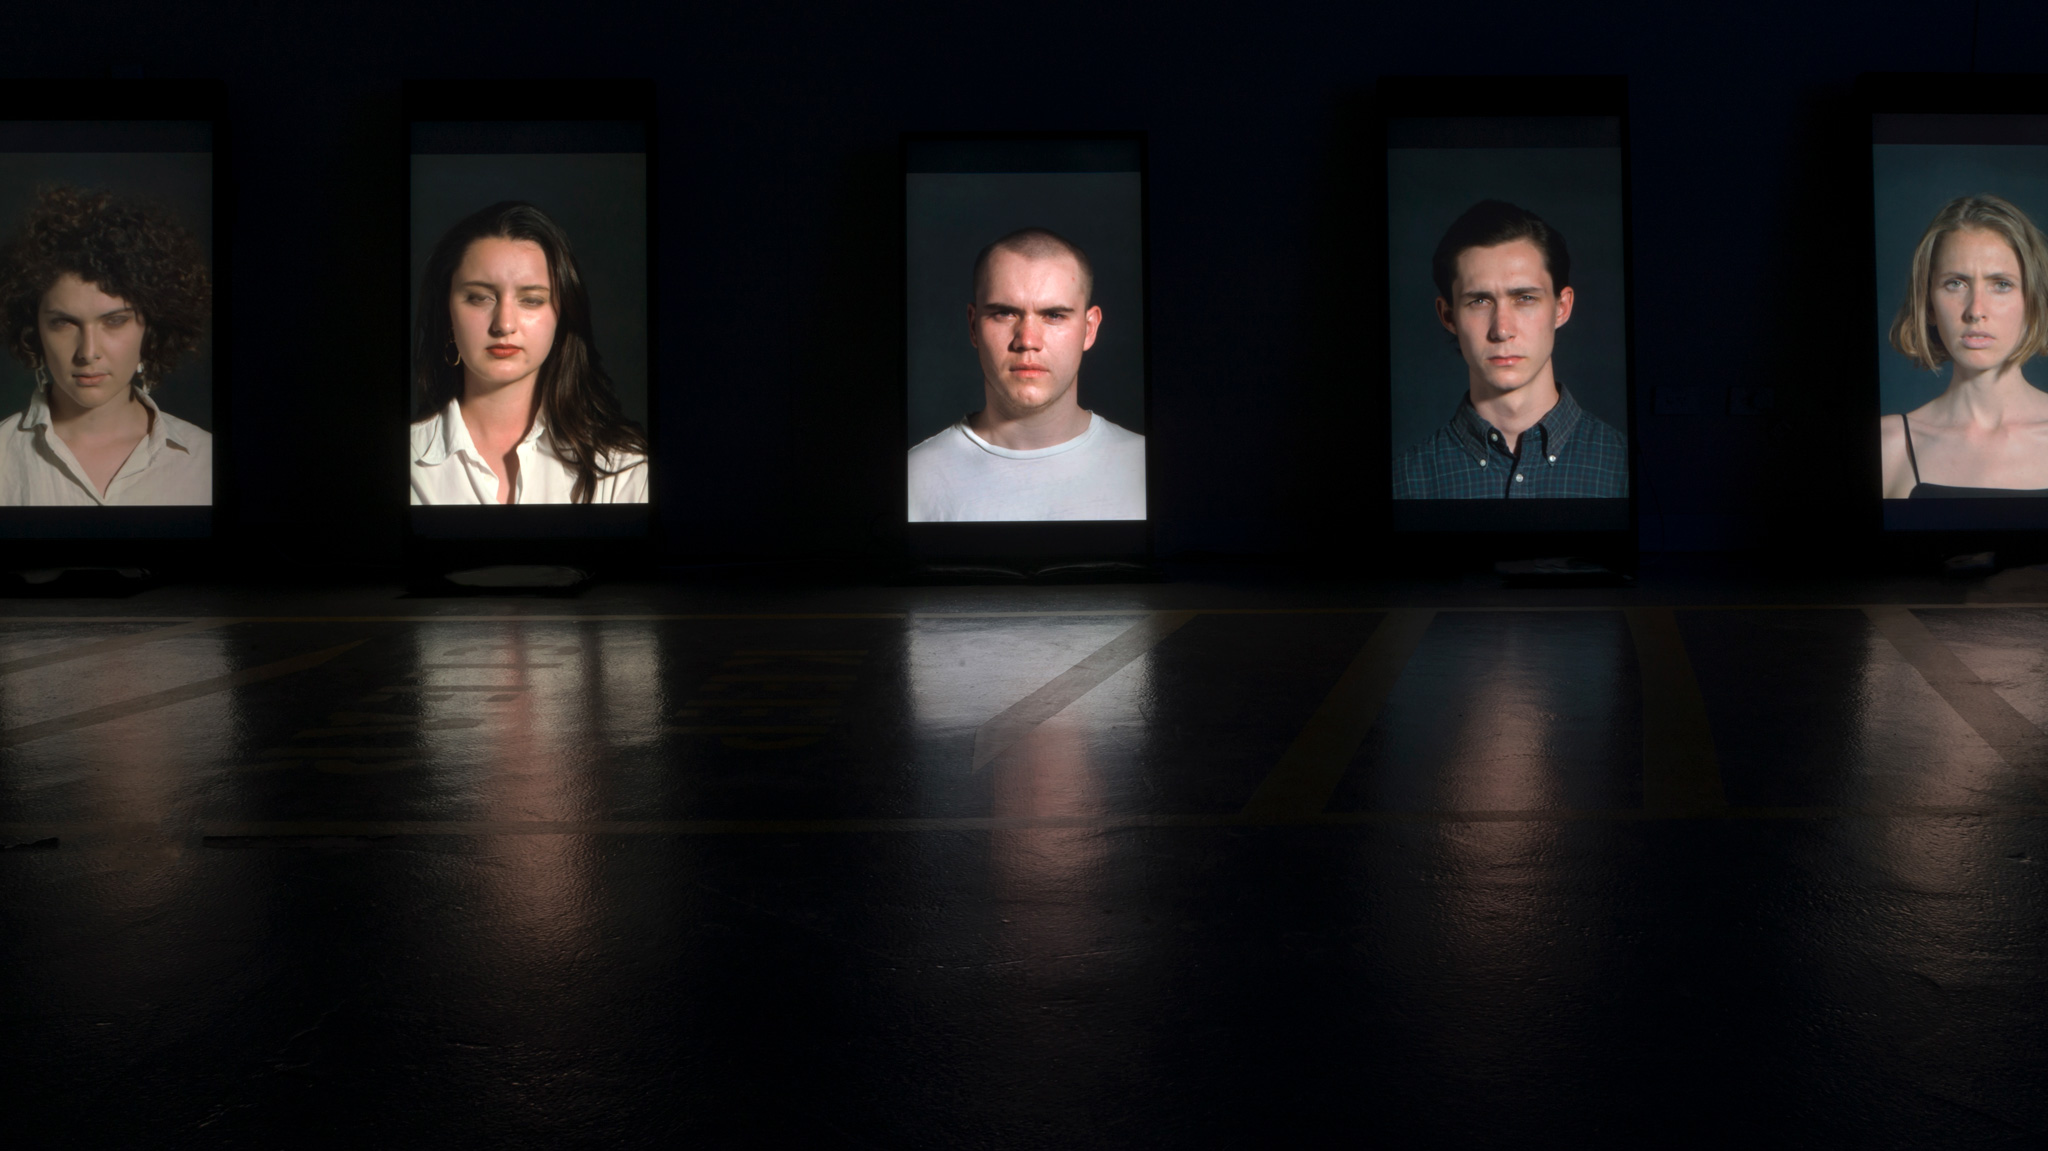 <p><i>Flash Portraits</i>, 2018, 5 Channel Installation, Vertically Orientated LCD Screens, 1200mm x 700mm, Installation View, U.T.S Studios 2018</p>